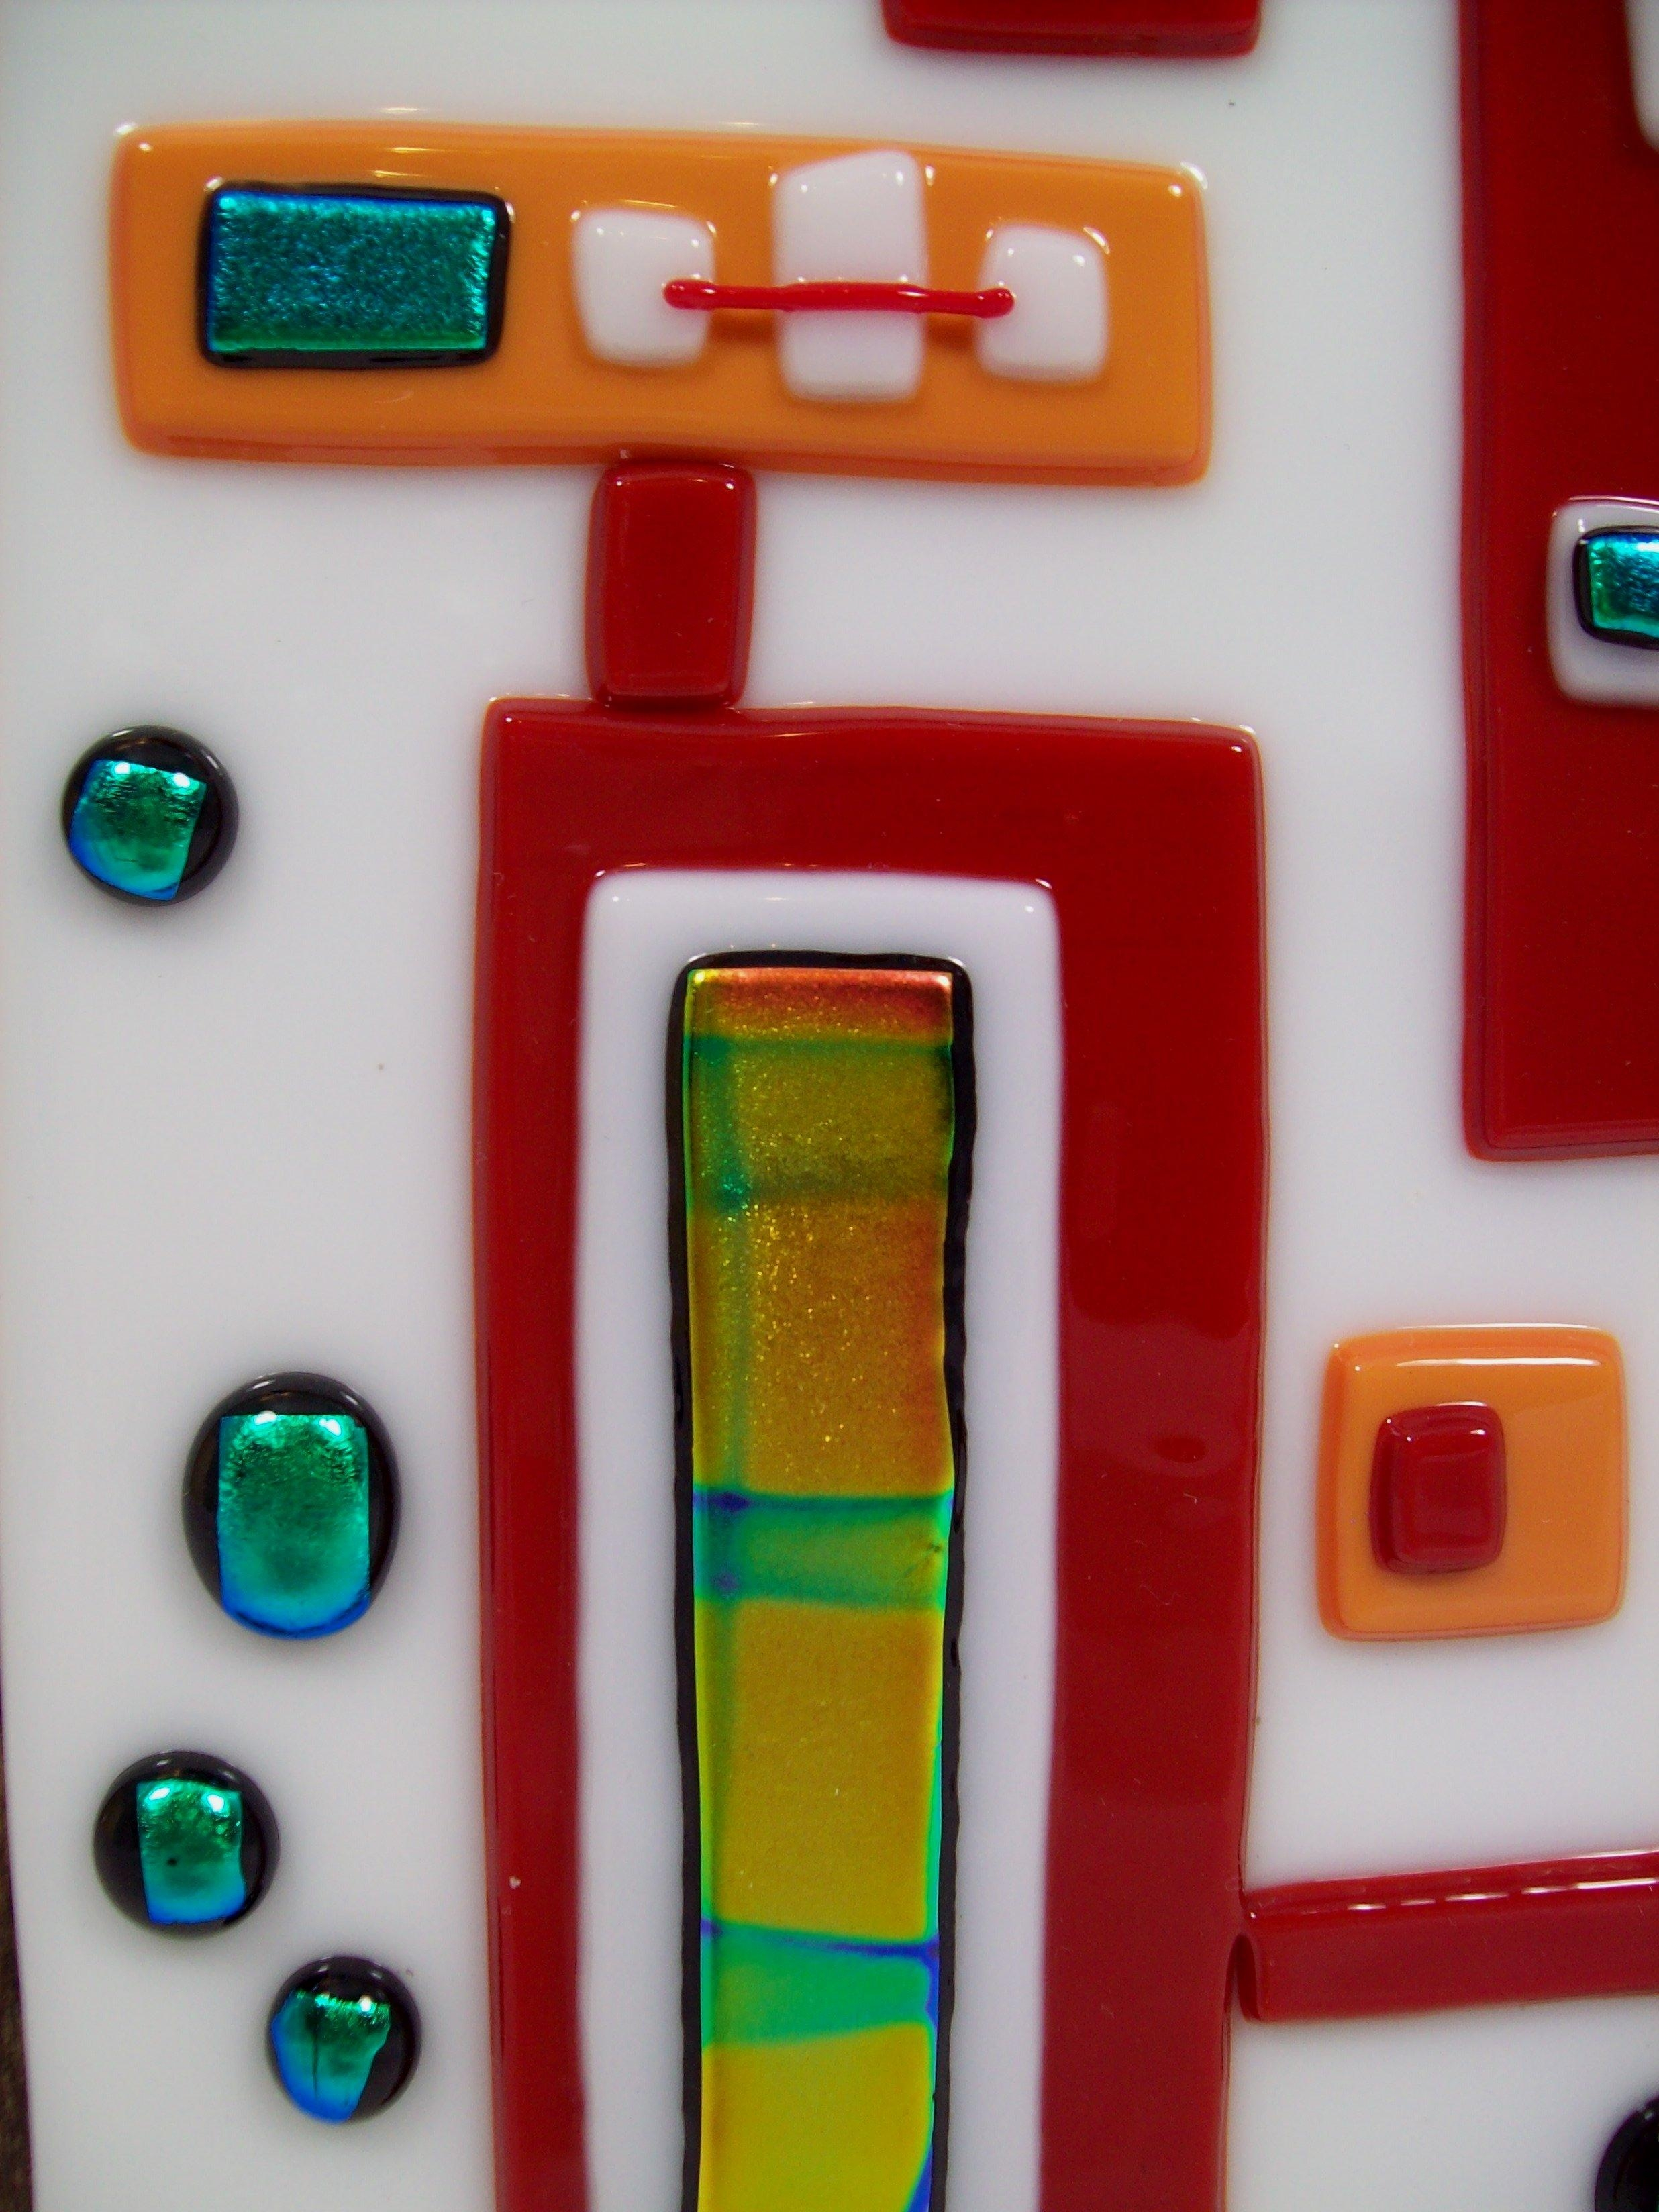 Fused Glass Wall Art #wm35 Regarding Cheap Fused Glass Wall Art (View 19 of 20)